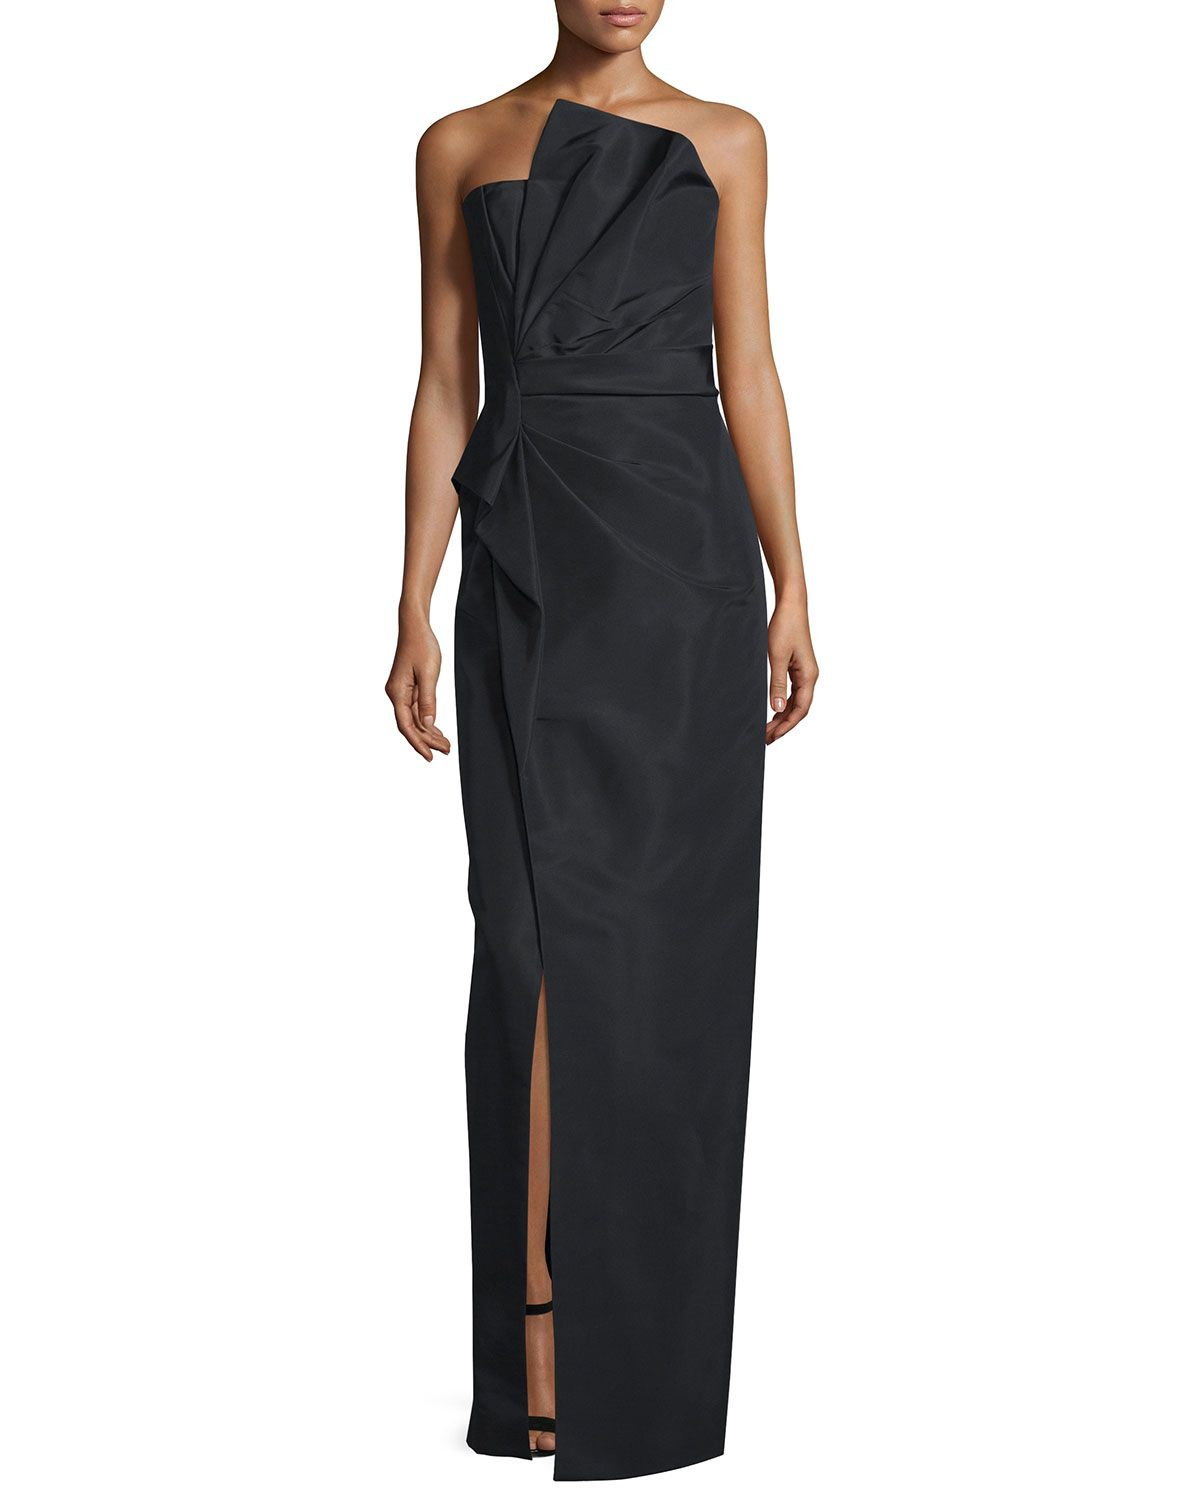 Strapless Fan-Pleated Column Gown, Noir - J. Mendel